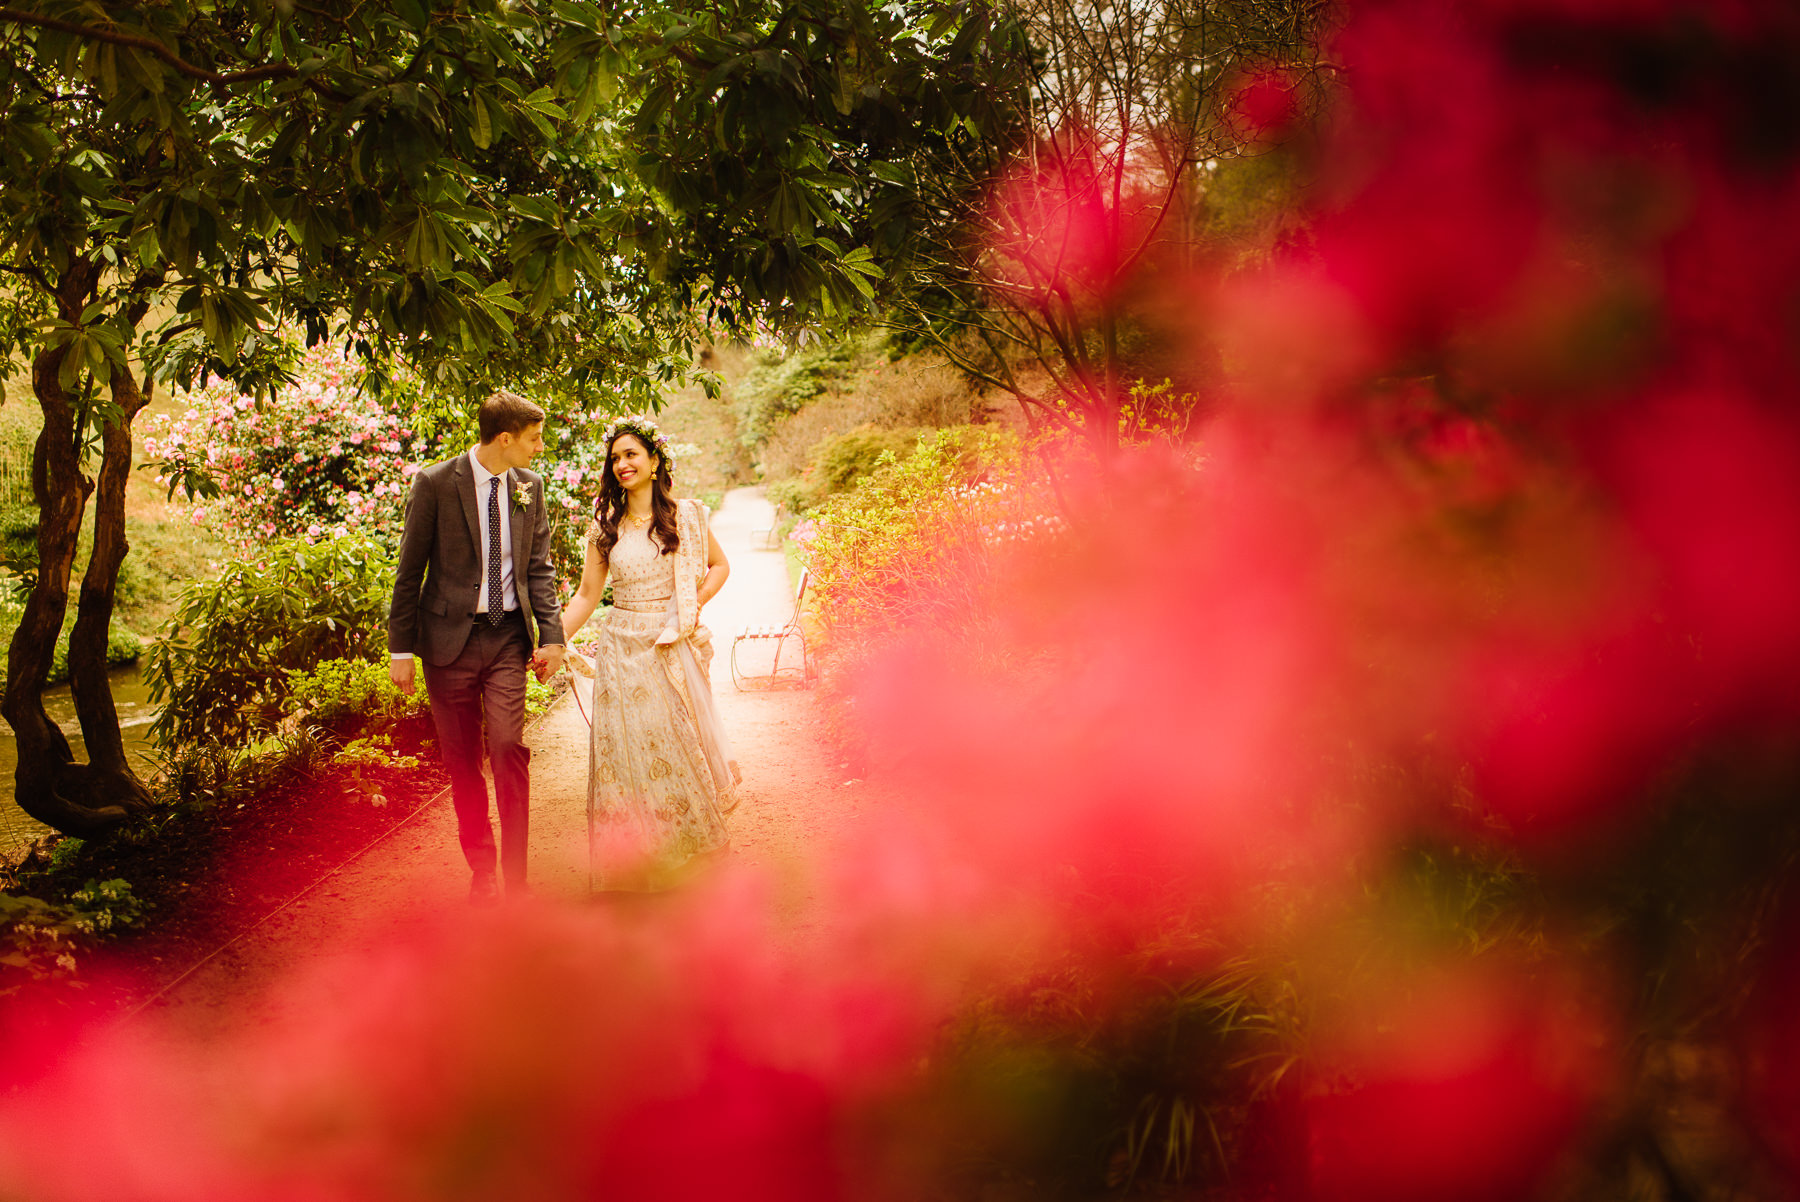 A Wedding portrait of Zara and Jared in the fabulous garden at  Quarry Bank Mill  in Manchester